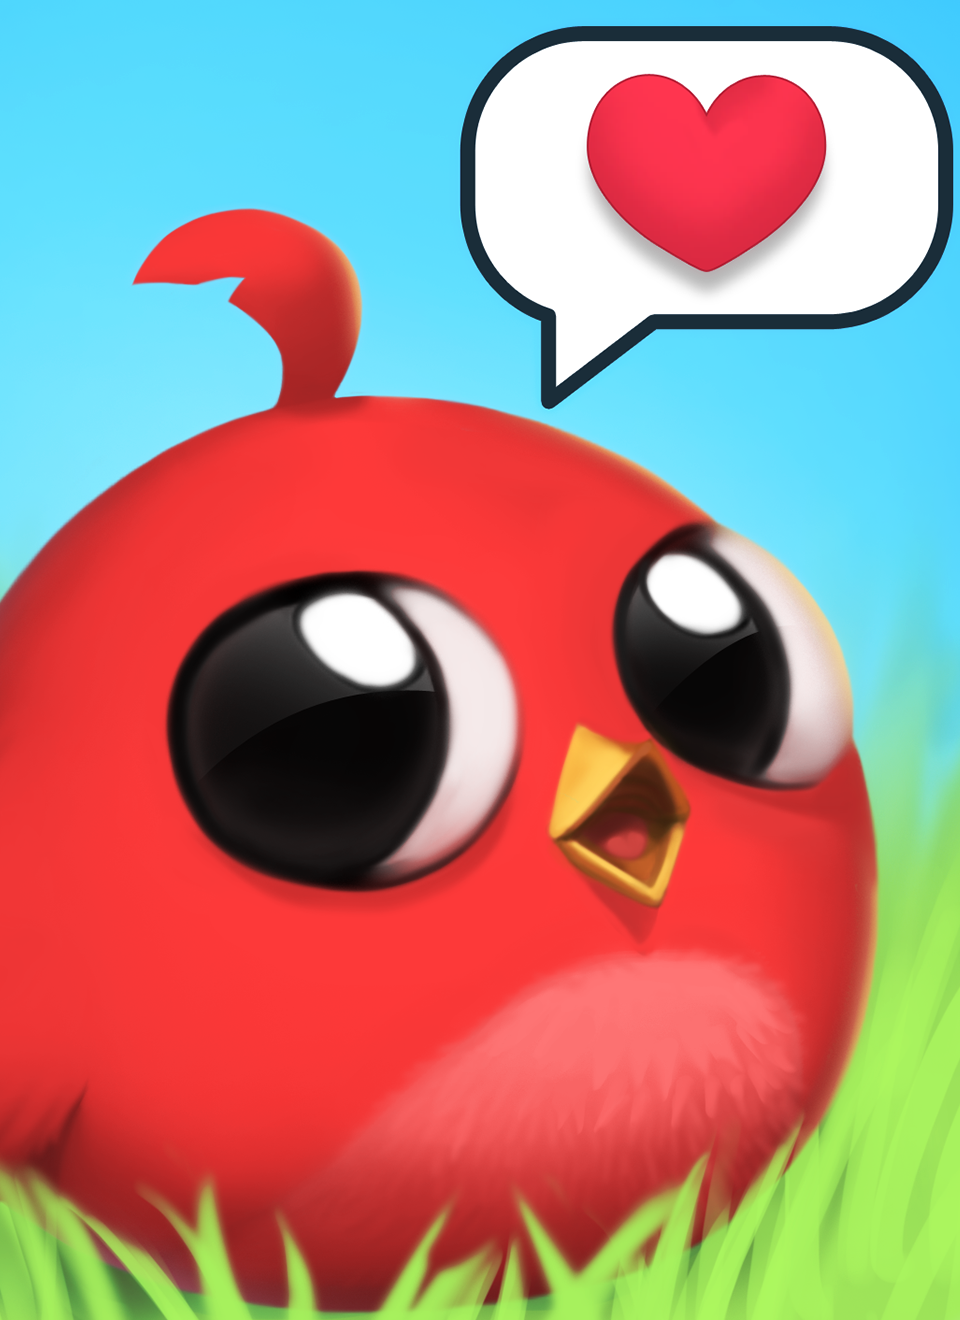 Bird Land - Pet Game » Android Games 365 - Free Android ...  Pet Bird Games